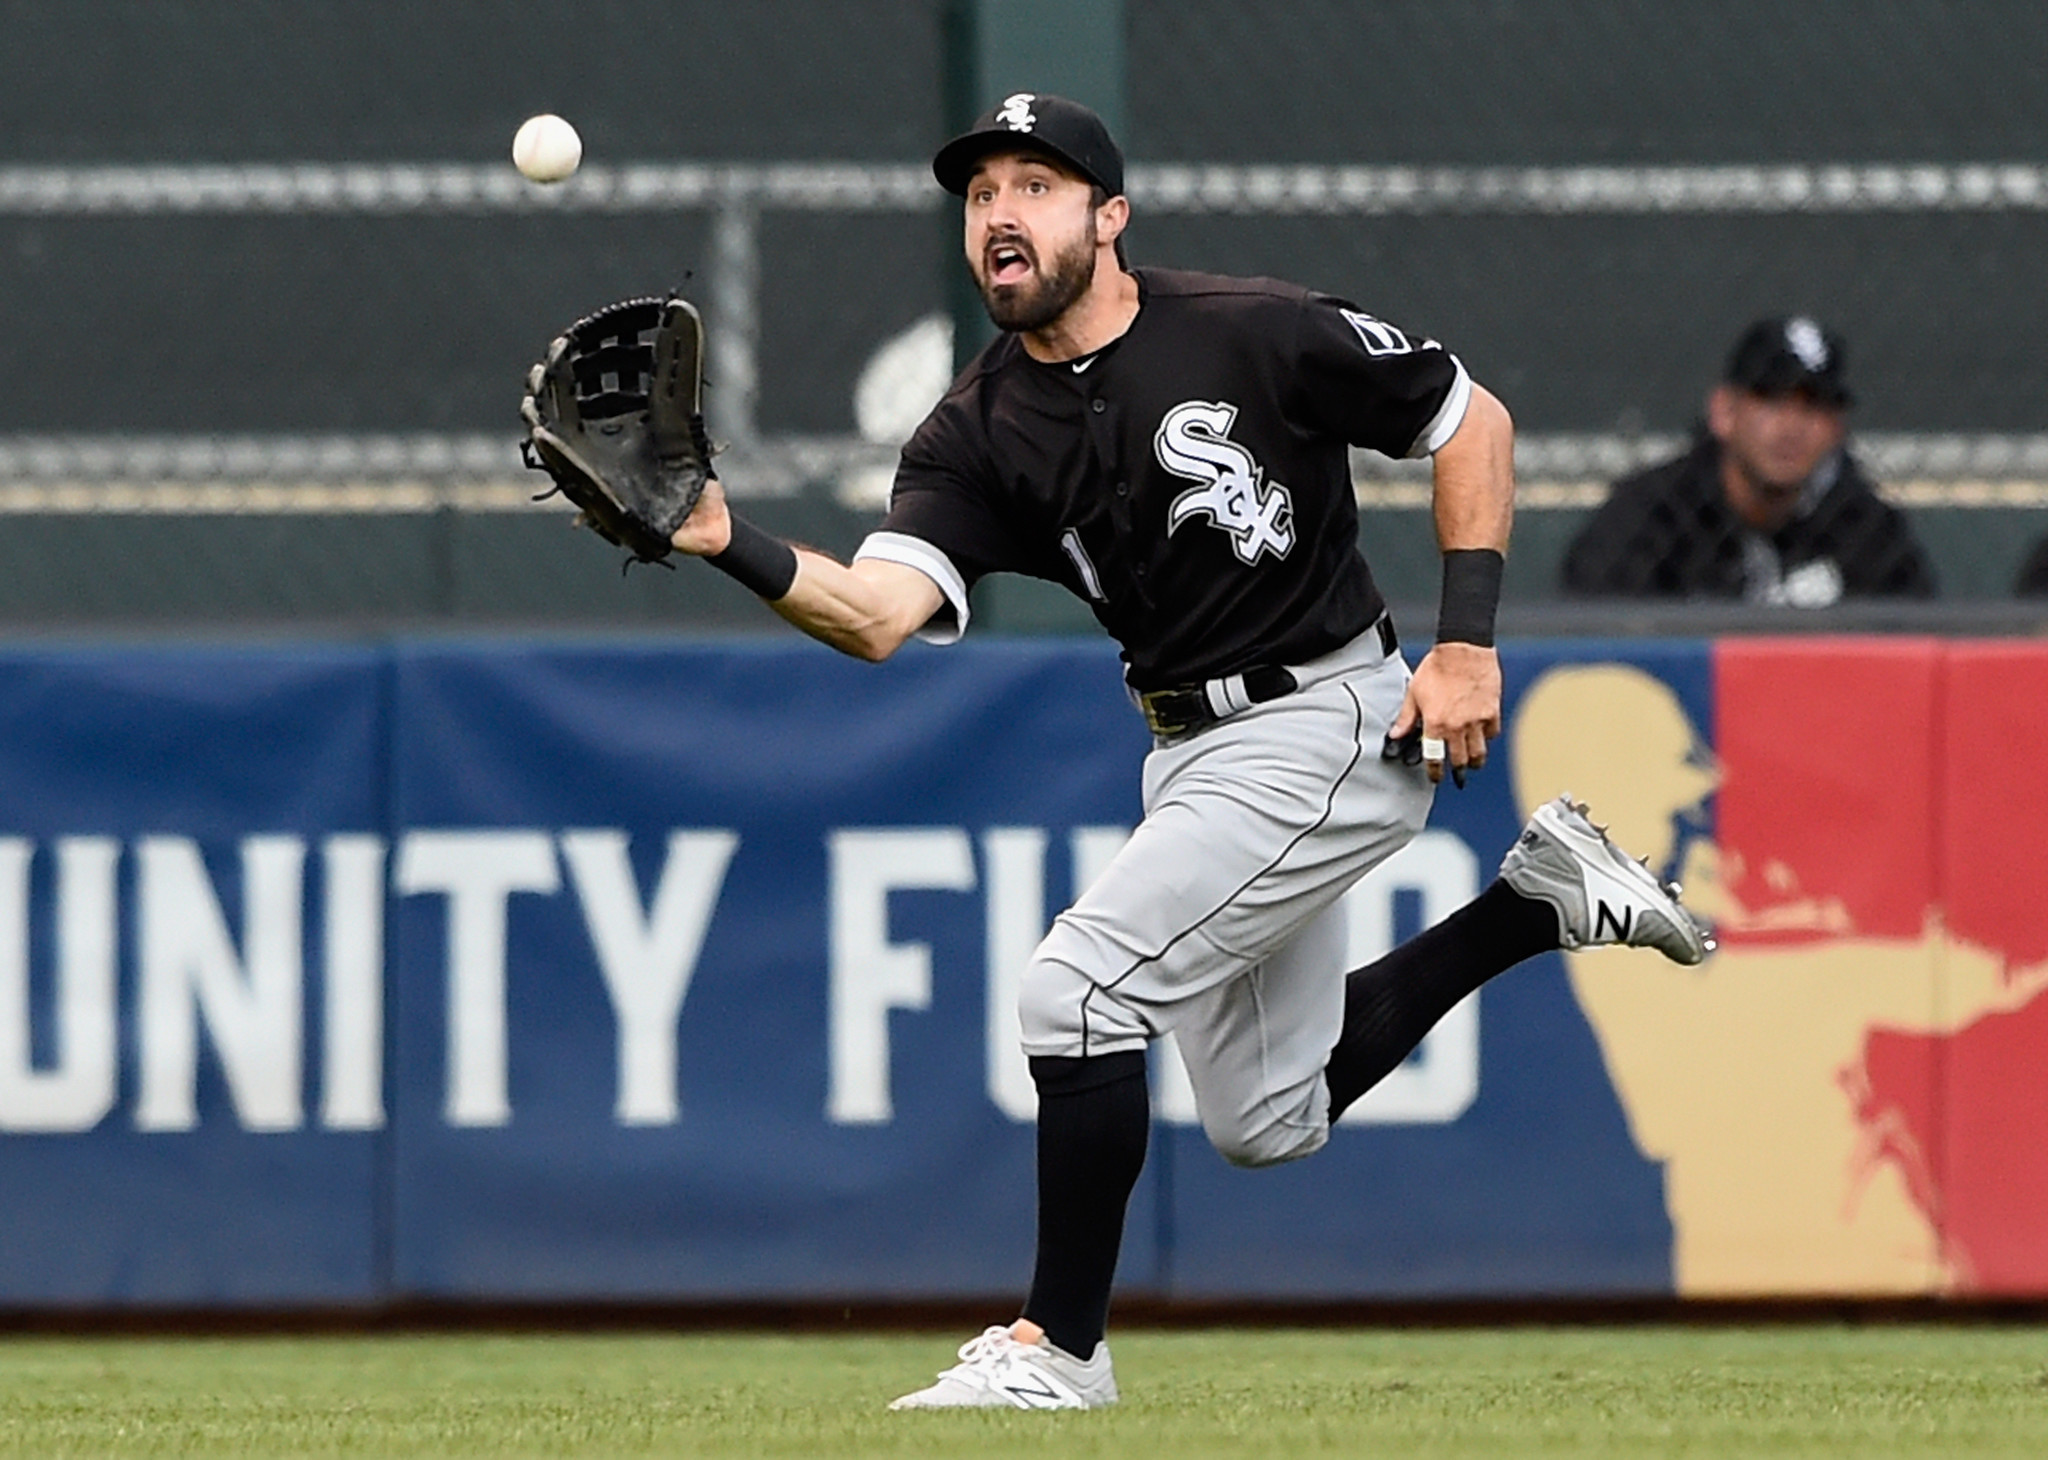 Adam eaton tyler flowers headed for surgery as white sox season adam eaton tyler flowers headed for surgery as white sox season closes chicago tribune mightylinksfo